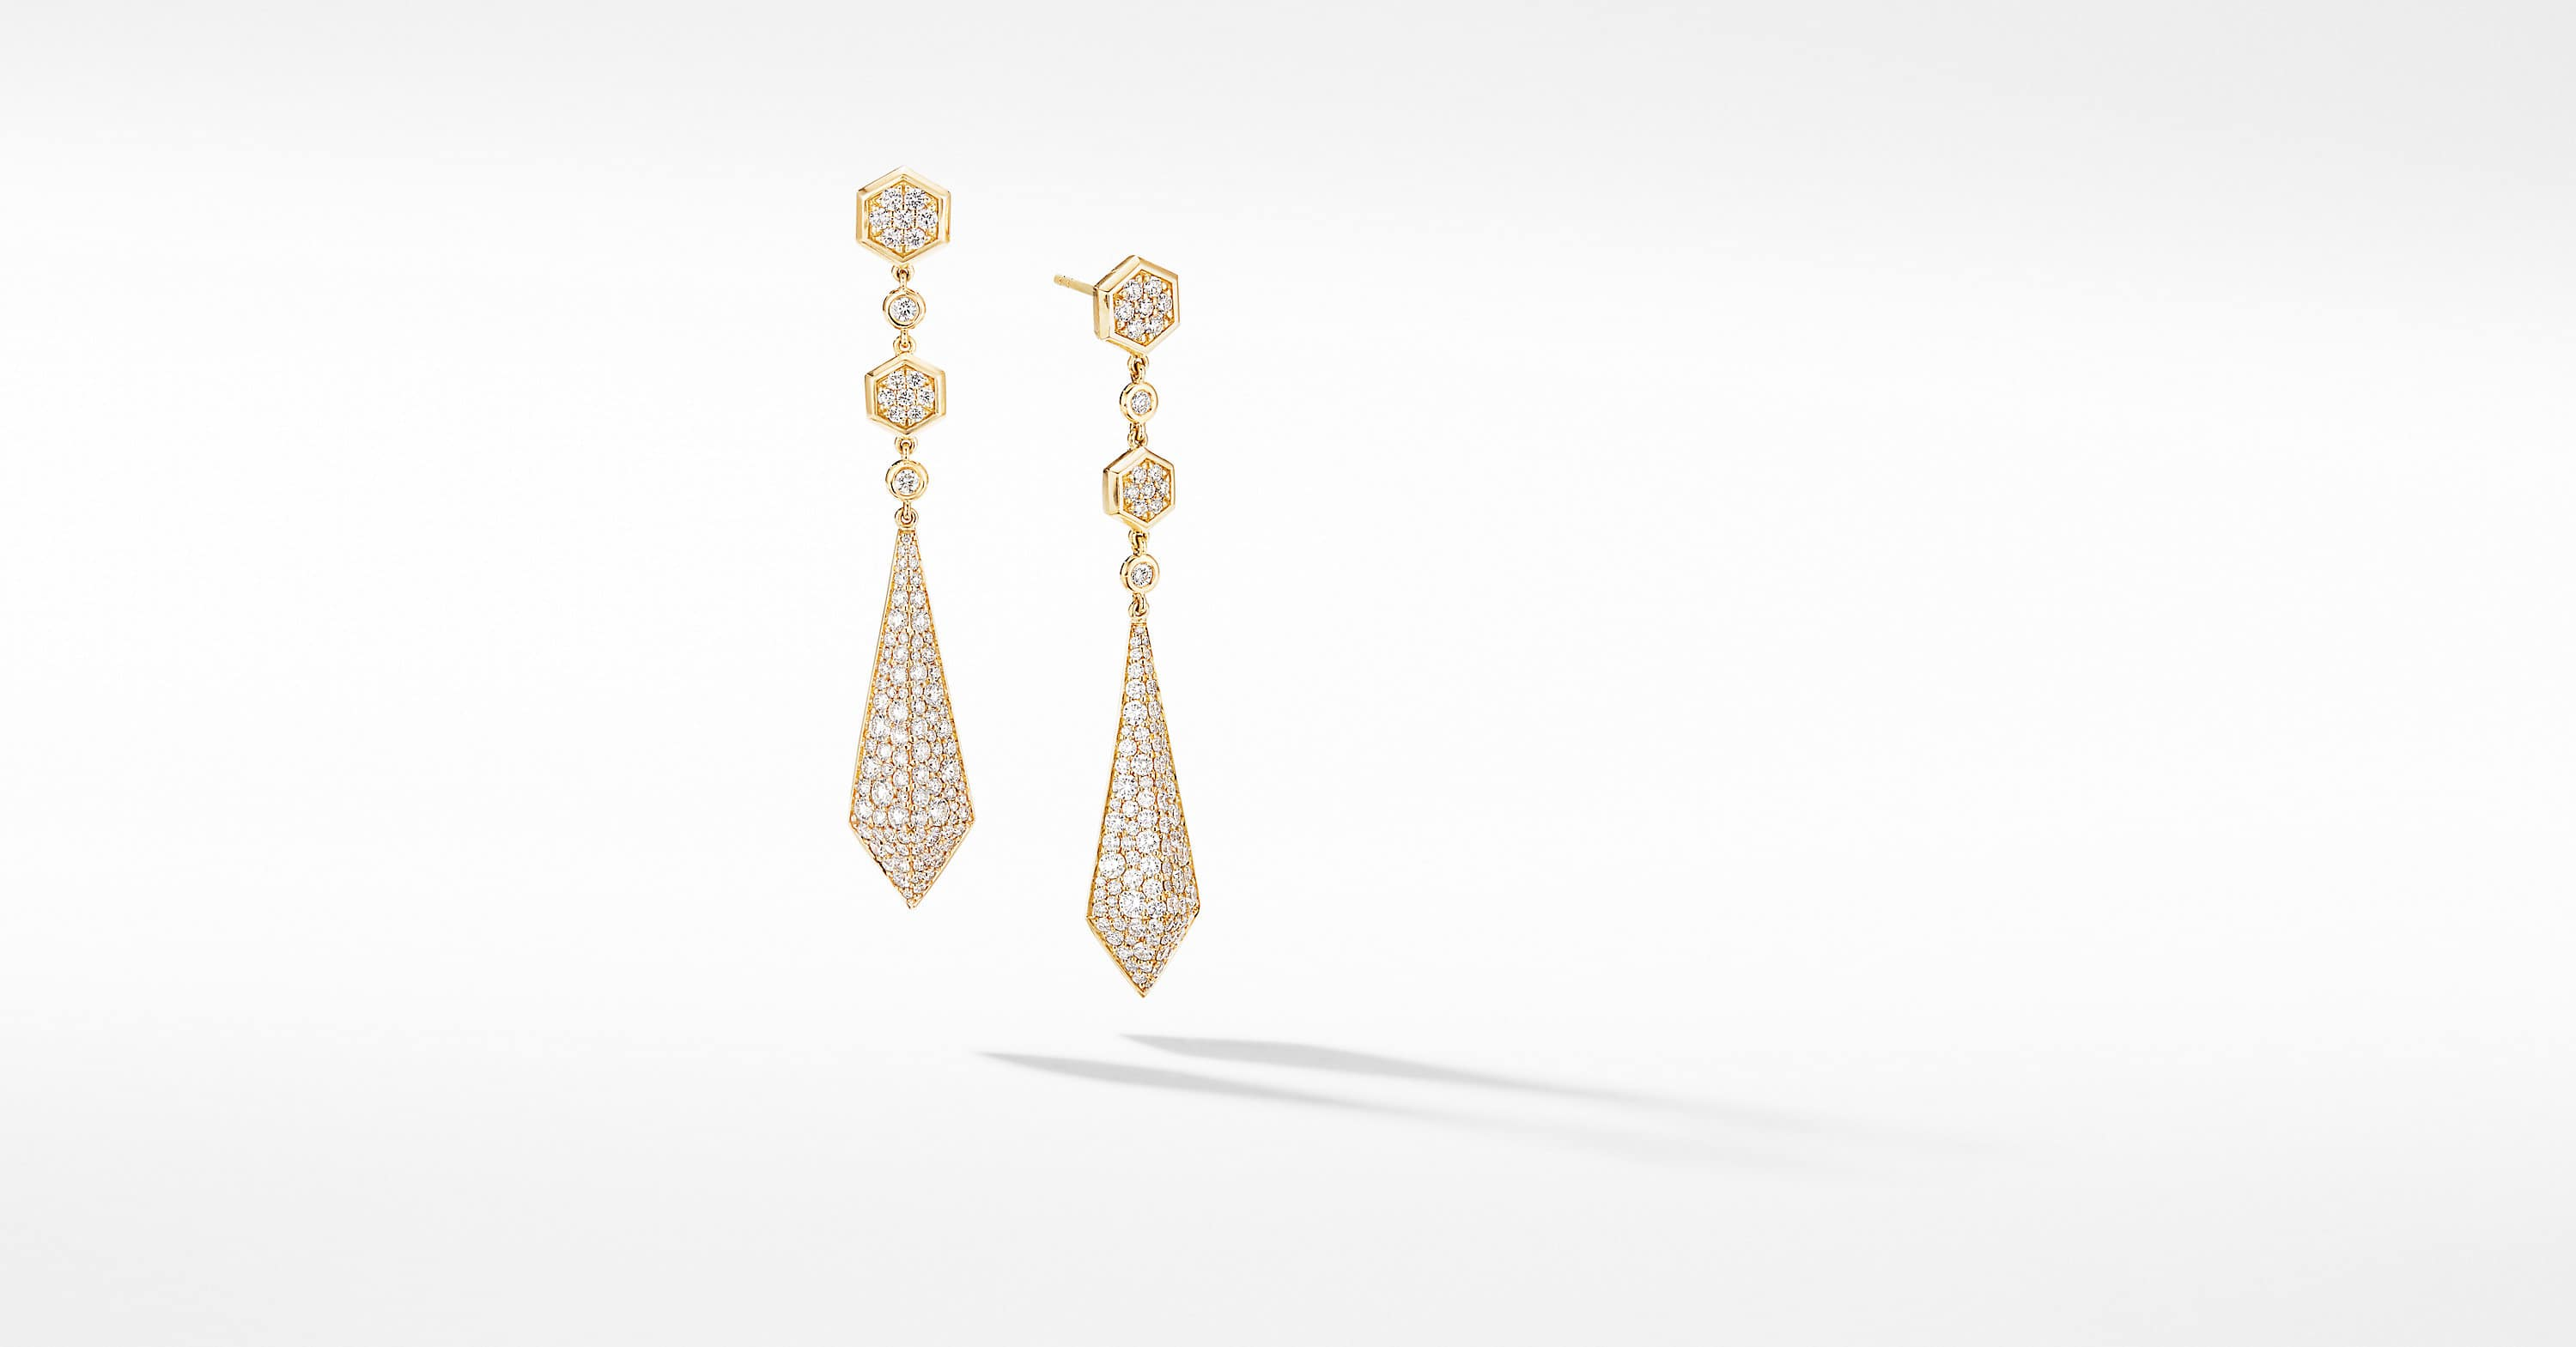 Renaissance Drop Earrings in 18K Yellow Gold with Full Pavé